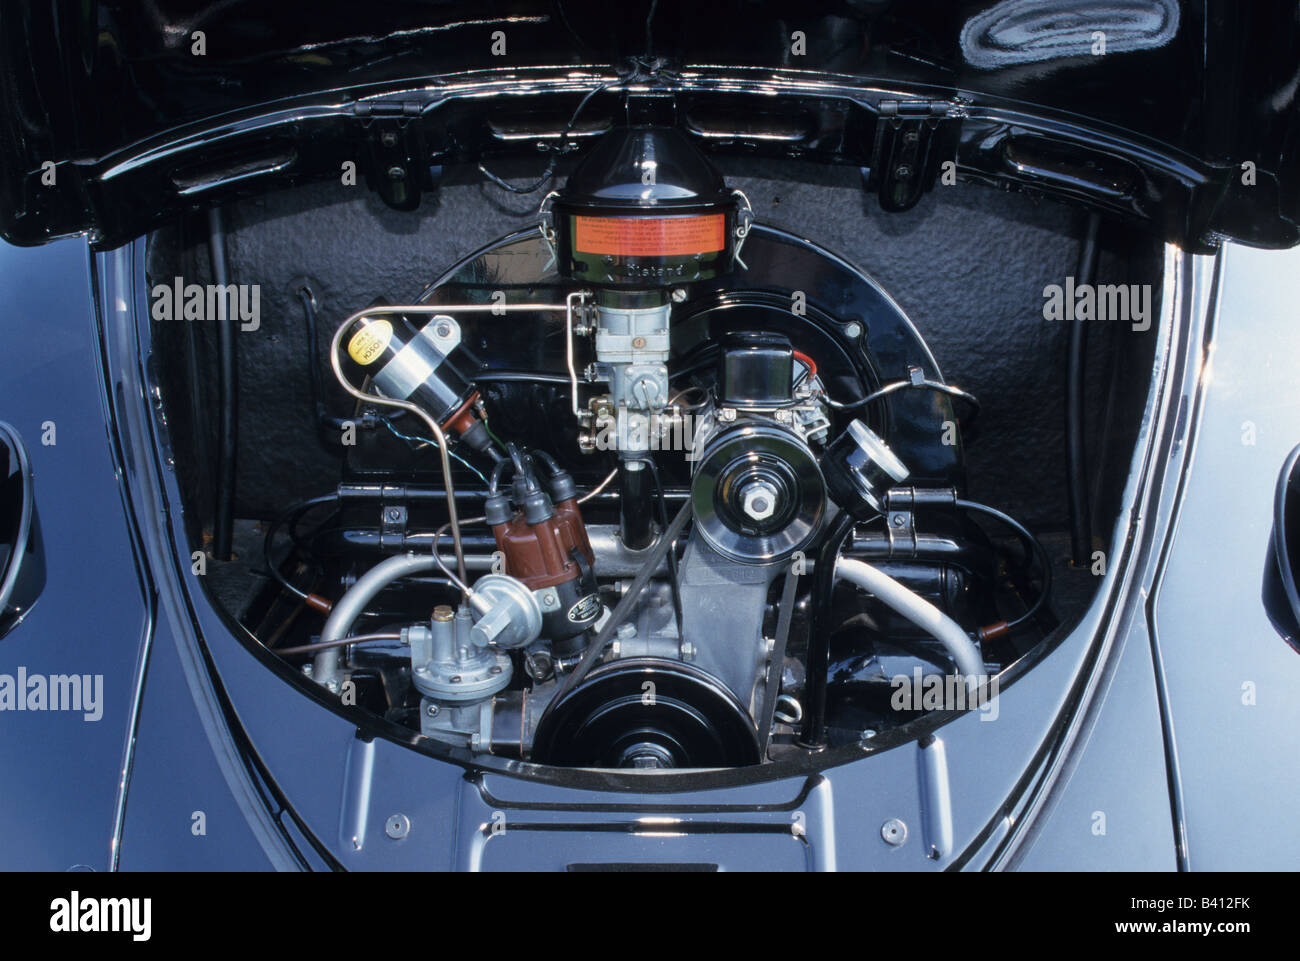 up beetle view in click late vw engine image thesamba reduced to model forum topic may super viewtopic fullscreen volkswagen size been have com